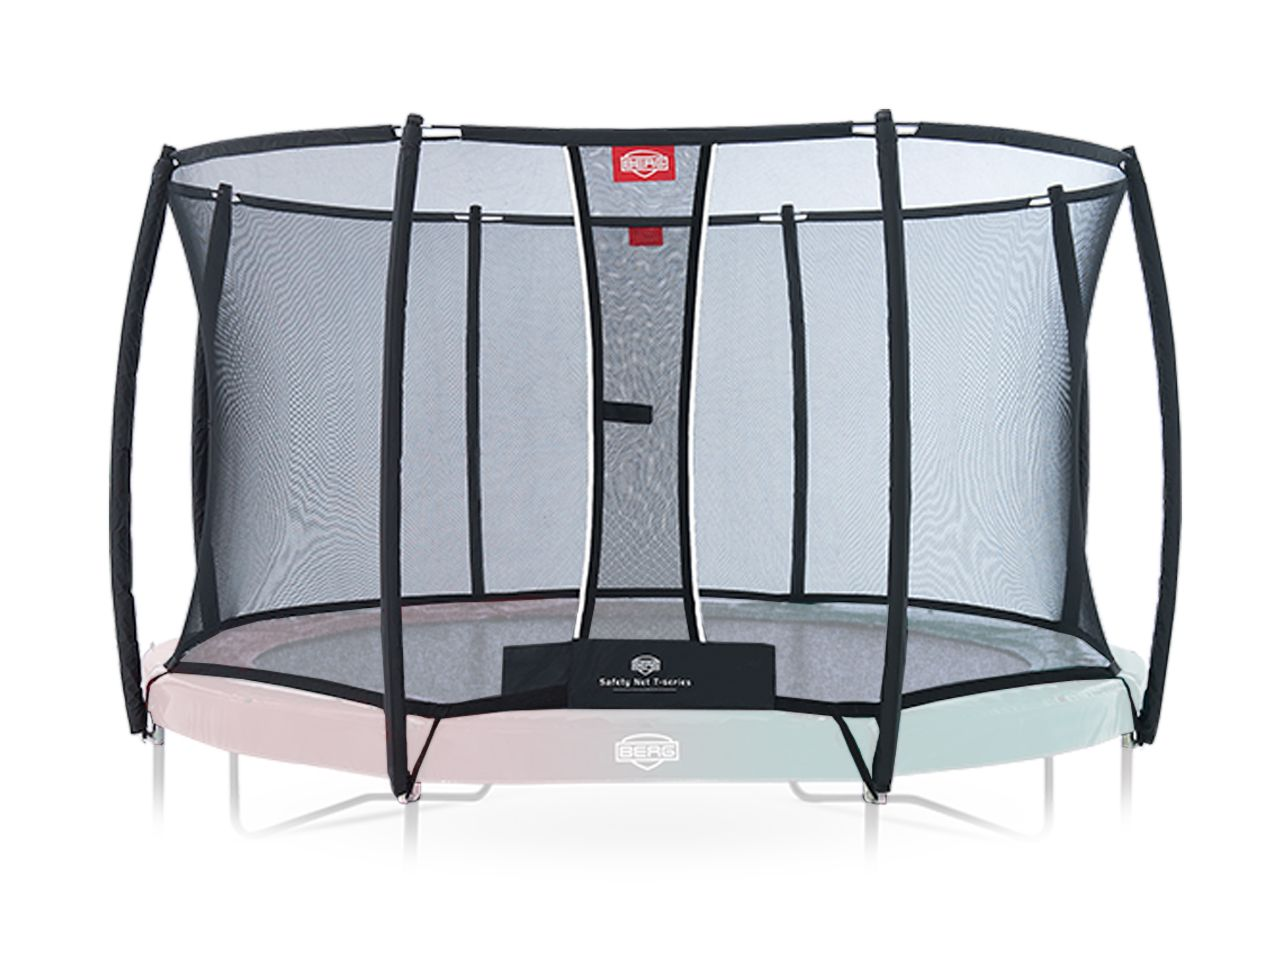 BERG Safety Net T-series 380 (12,5 ft)